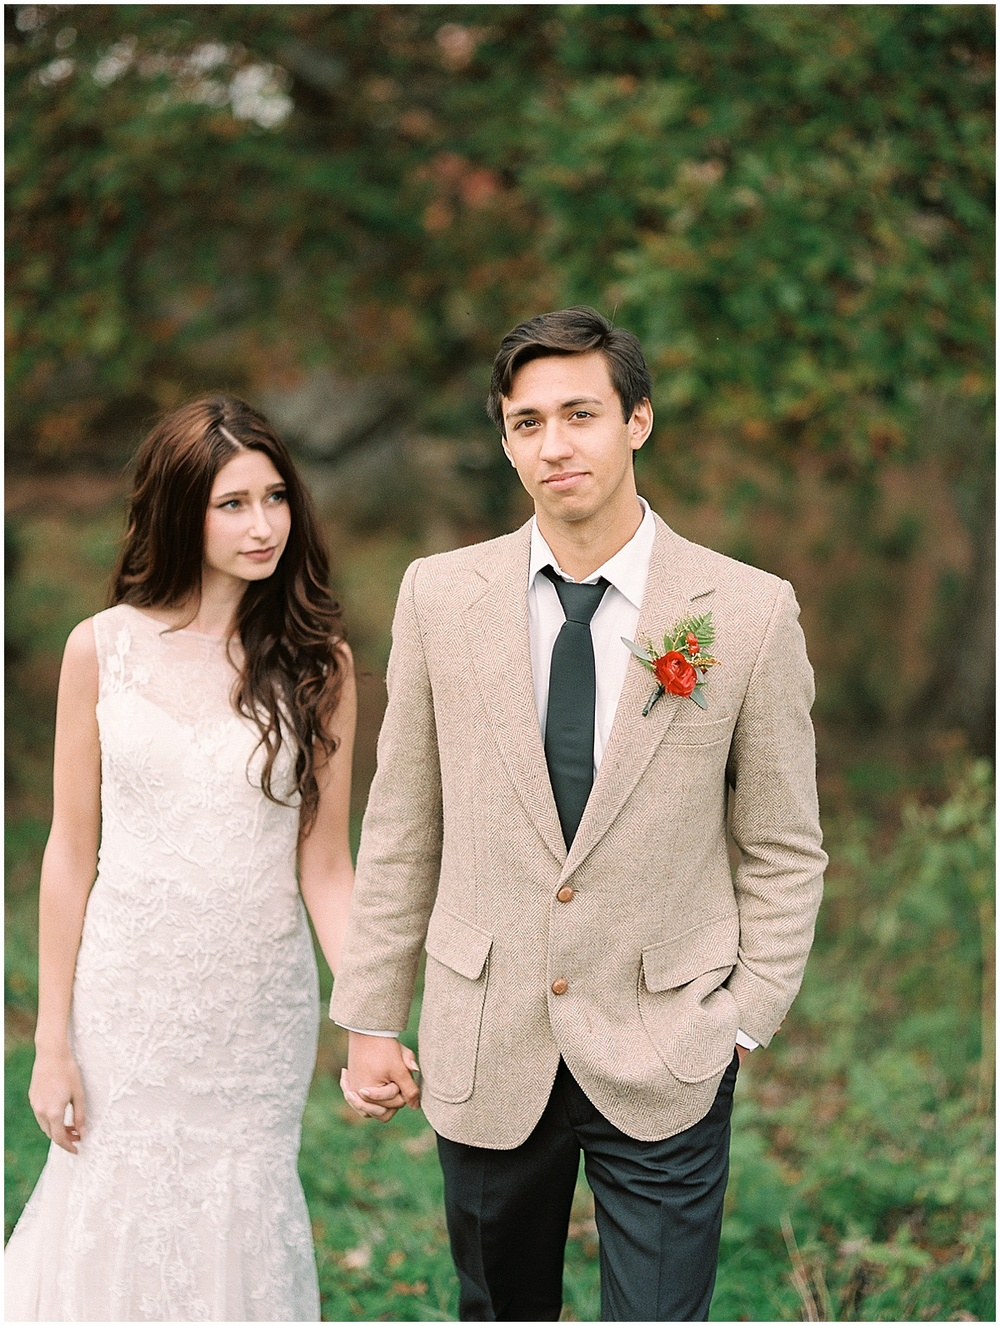 Abigail_Malone_Fall_Wedding_Knoxville_Film_Portra_400_Kodak_Mountain_Views_Abby_Elizabeth-62.jpg